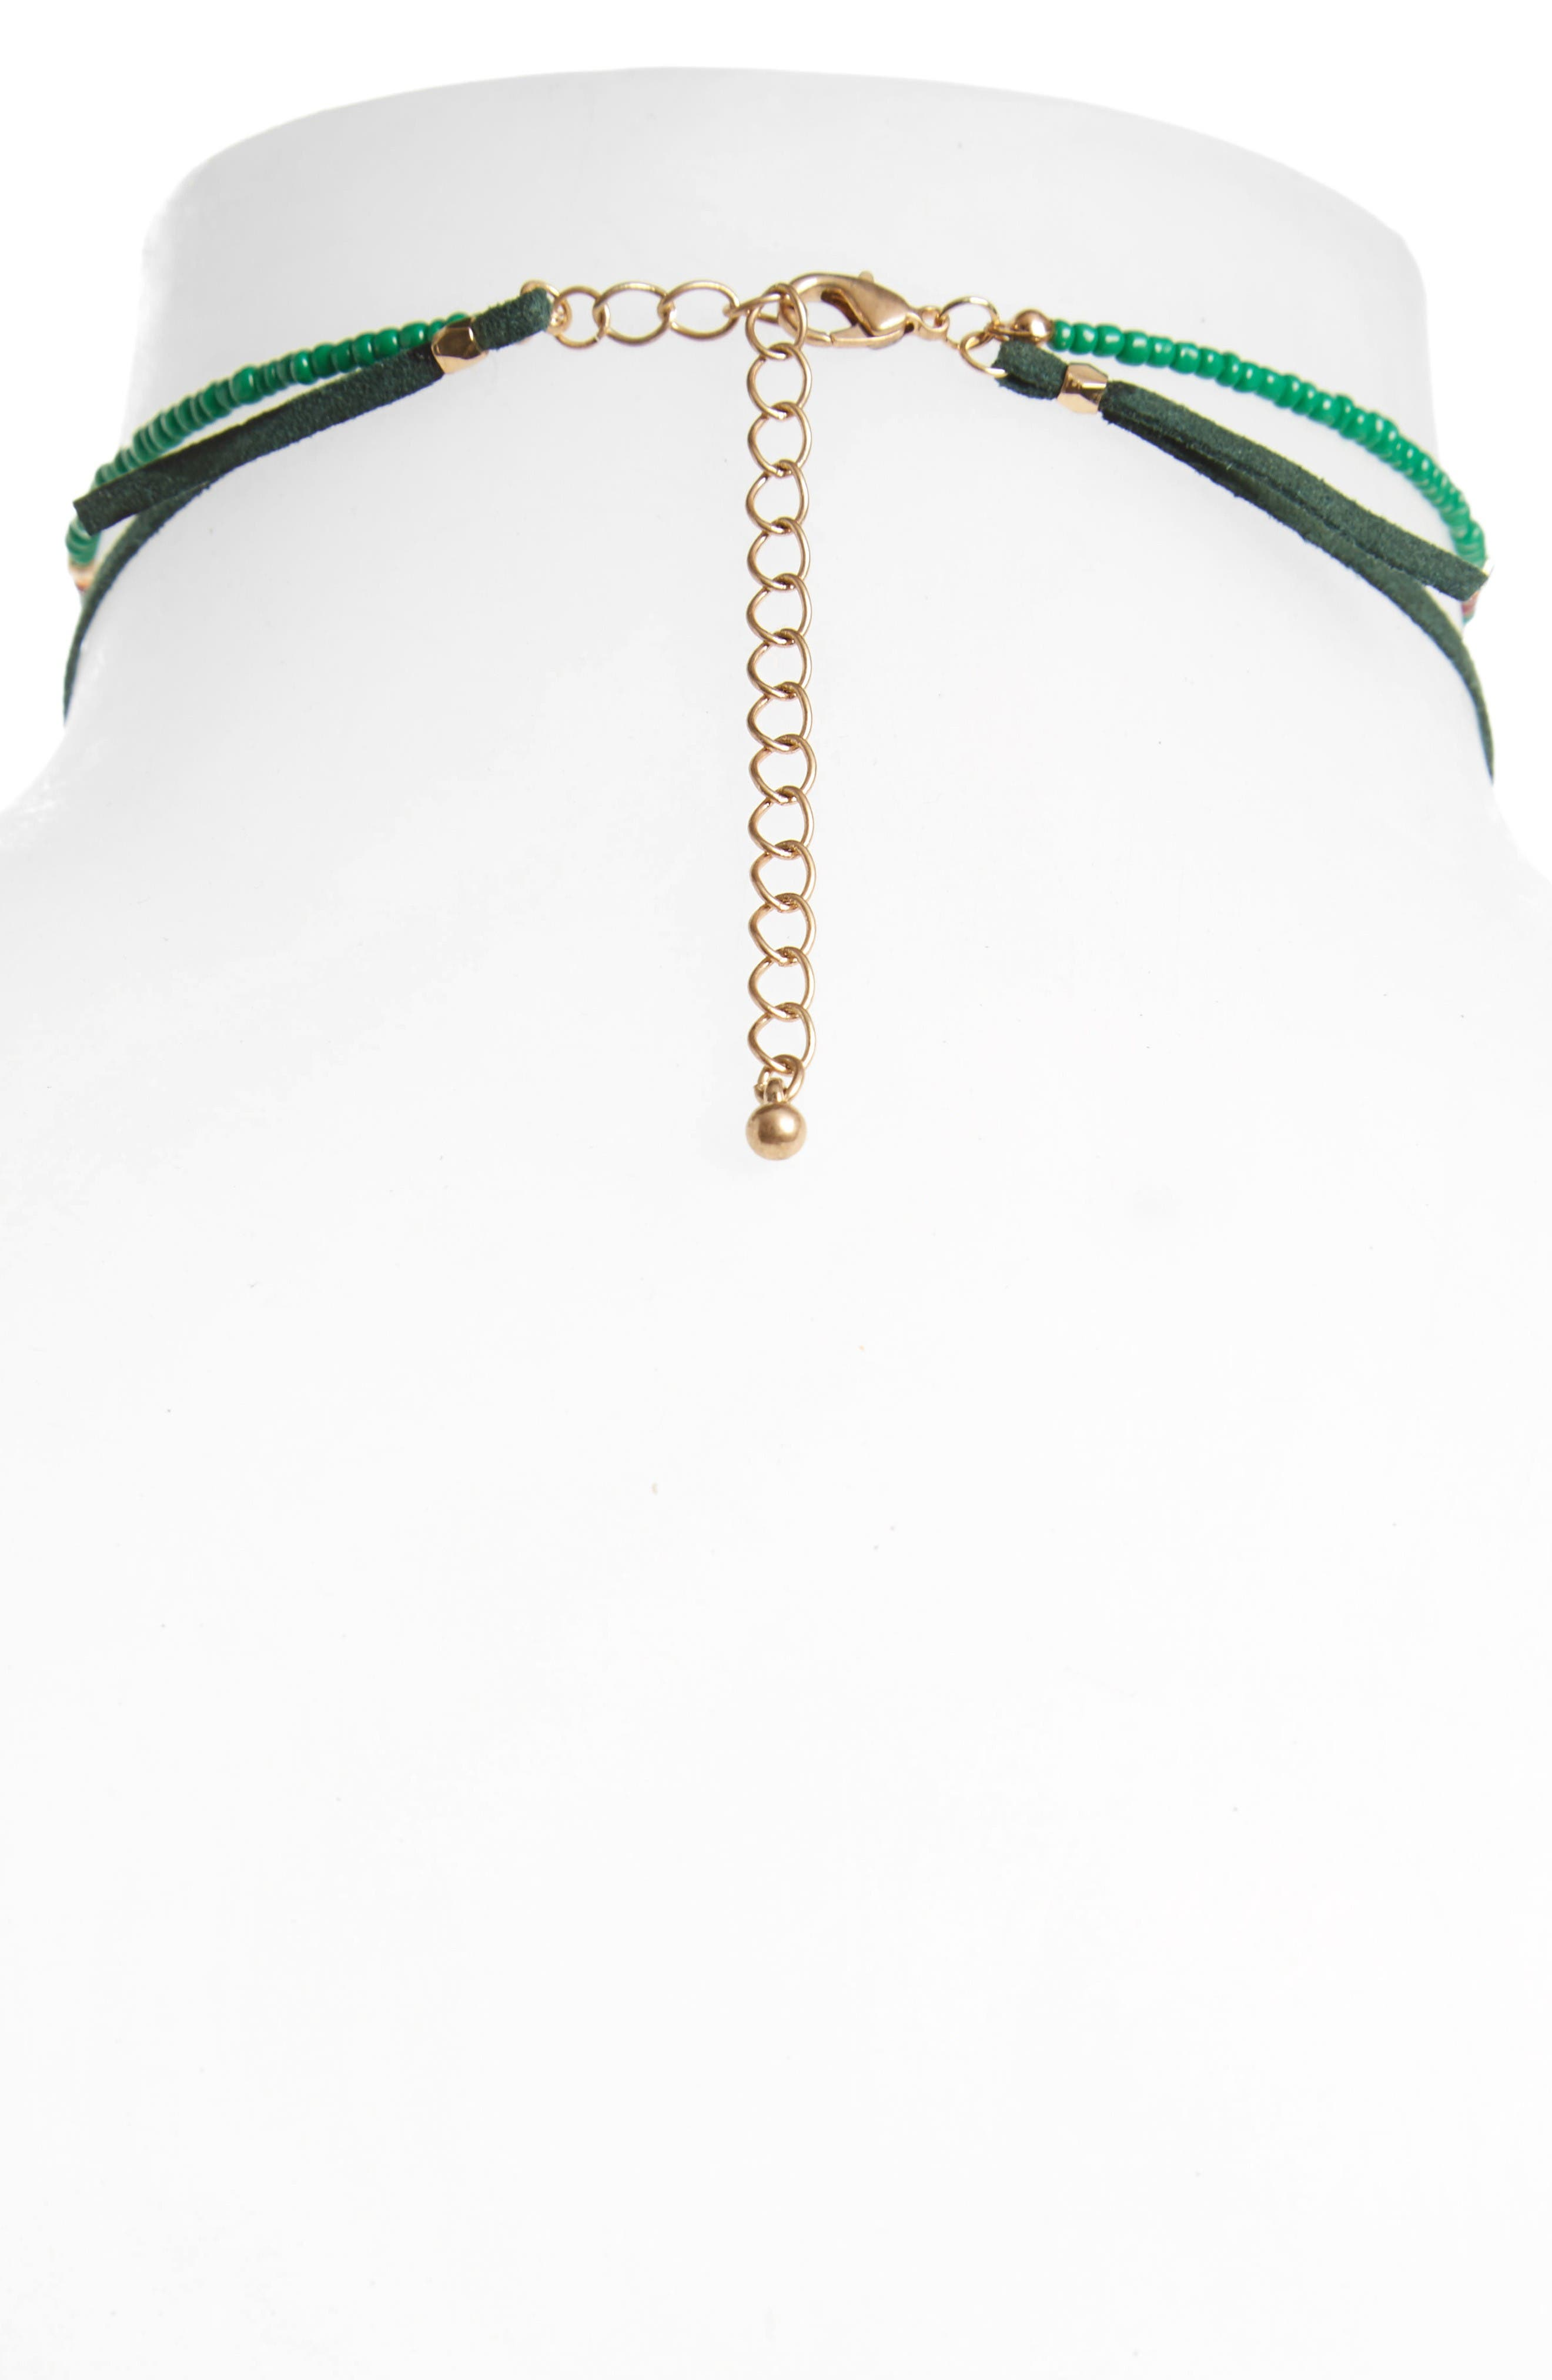 Leather Tie Choker Necklace,                             Alternate thumbnail 2, color,                             Mint- Gold- Dark Green